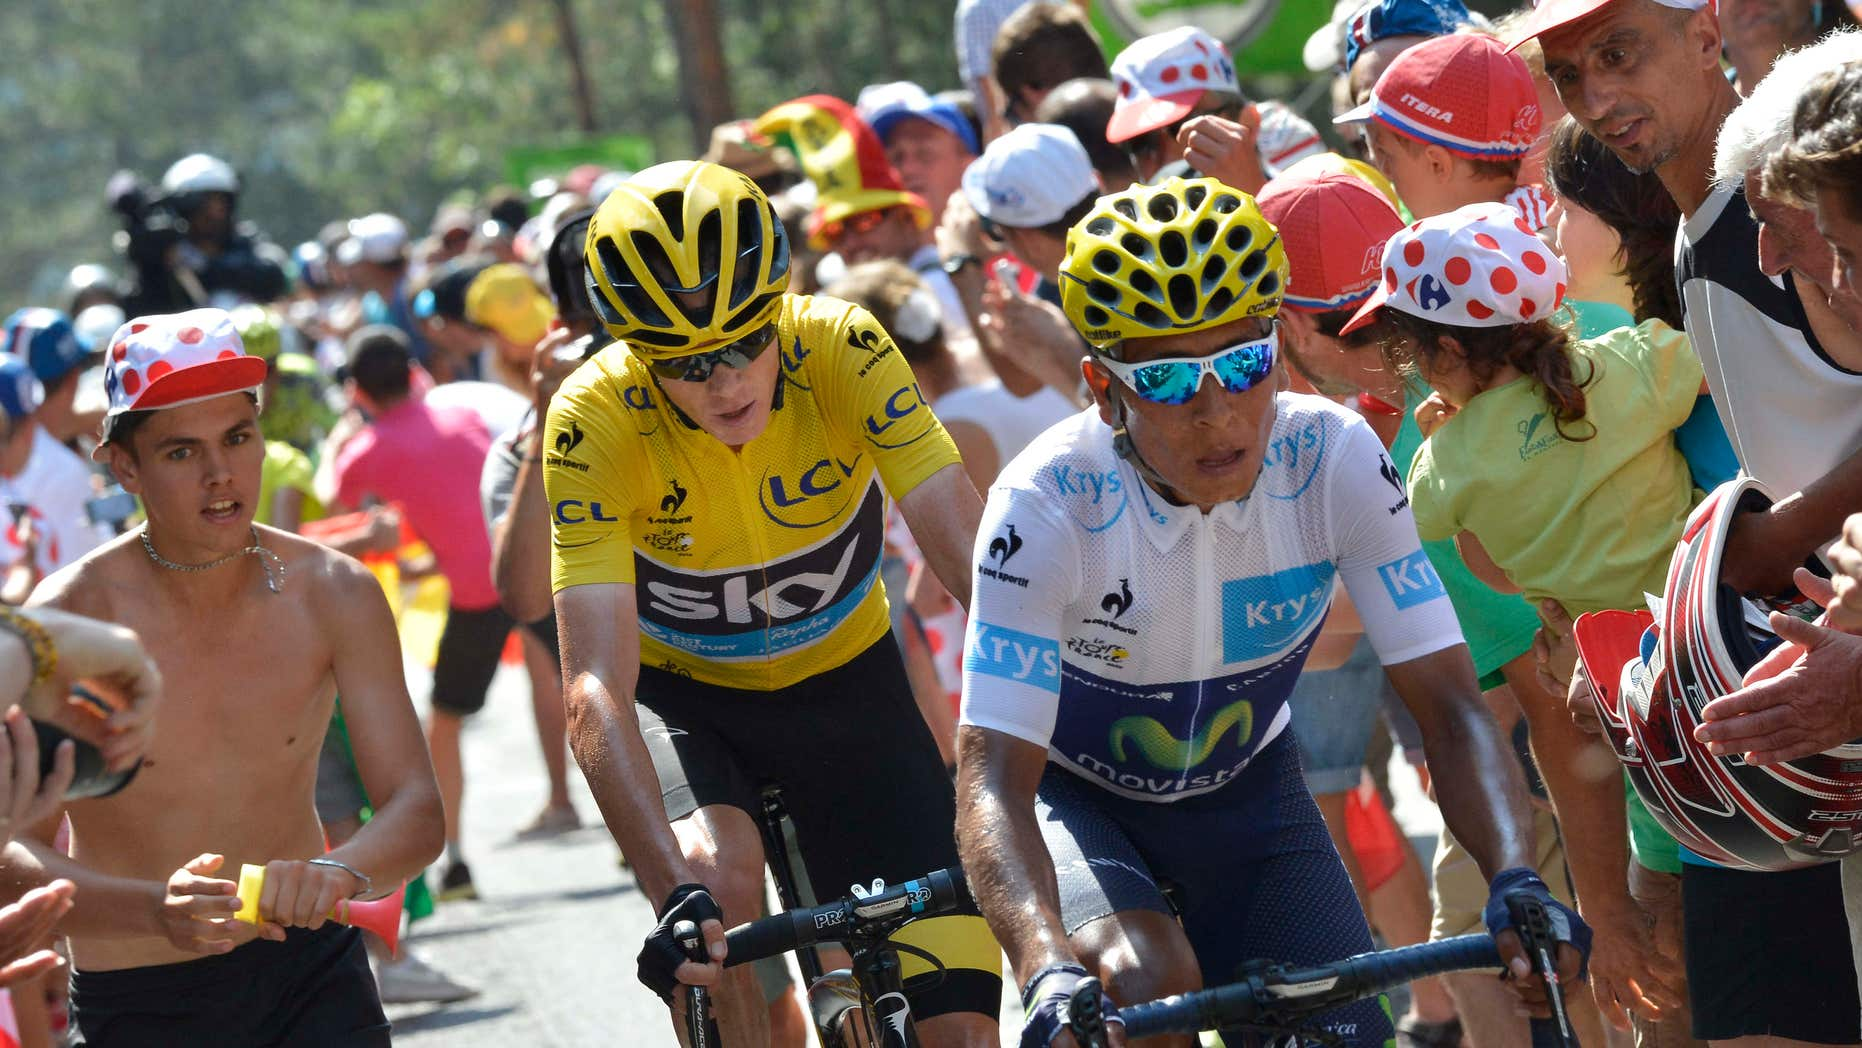 July 18, 2015: Colombia's Nairo Quintana, wearing the best young rider's white jersey, and Britain's Chris Froome, wearing the overall leader's yellow jersey, climb in the final kilometers of the fourteenth stage of the Tour de France cycling race over 178.5 kilometers (110.9 miles) with start in Rodez and finish in Mende, France.